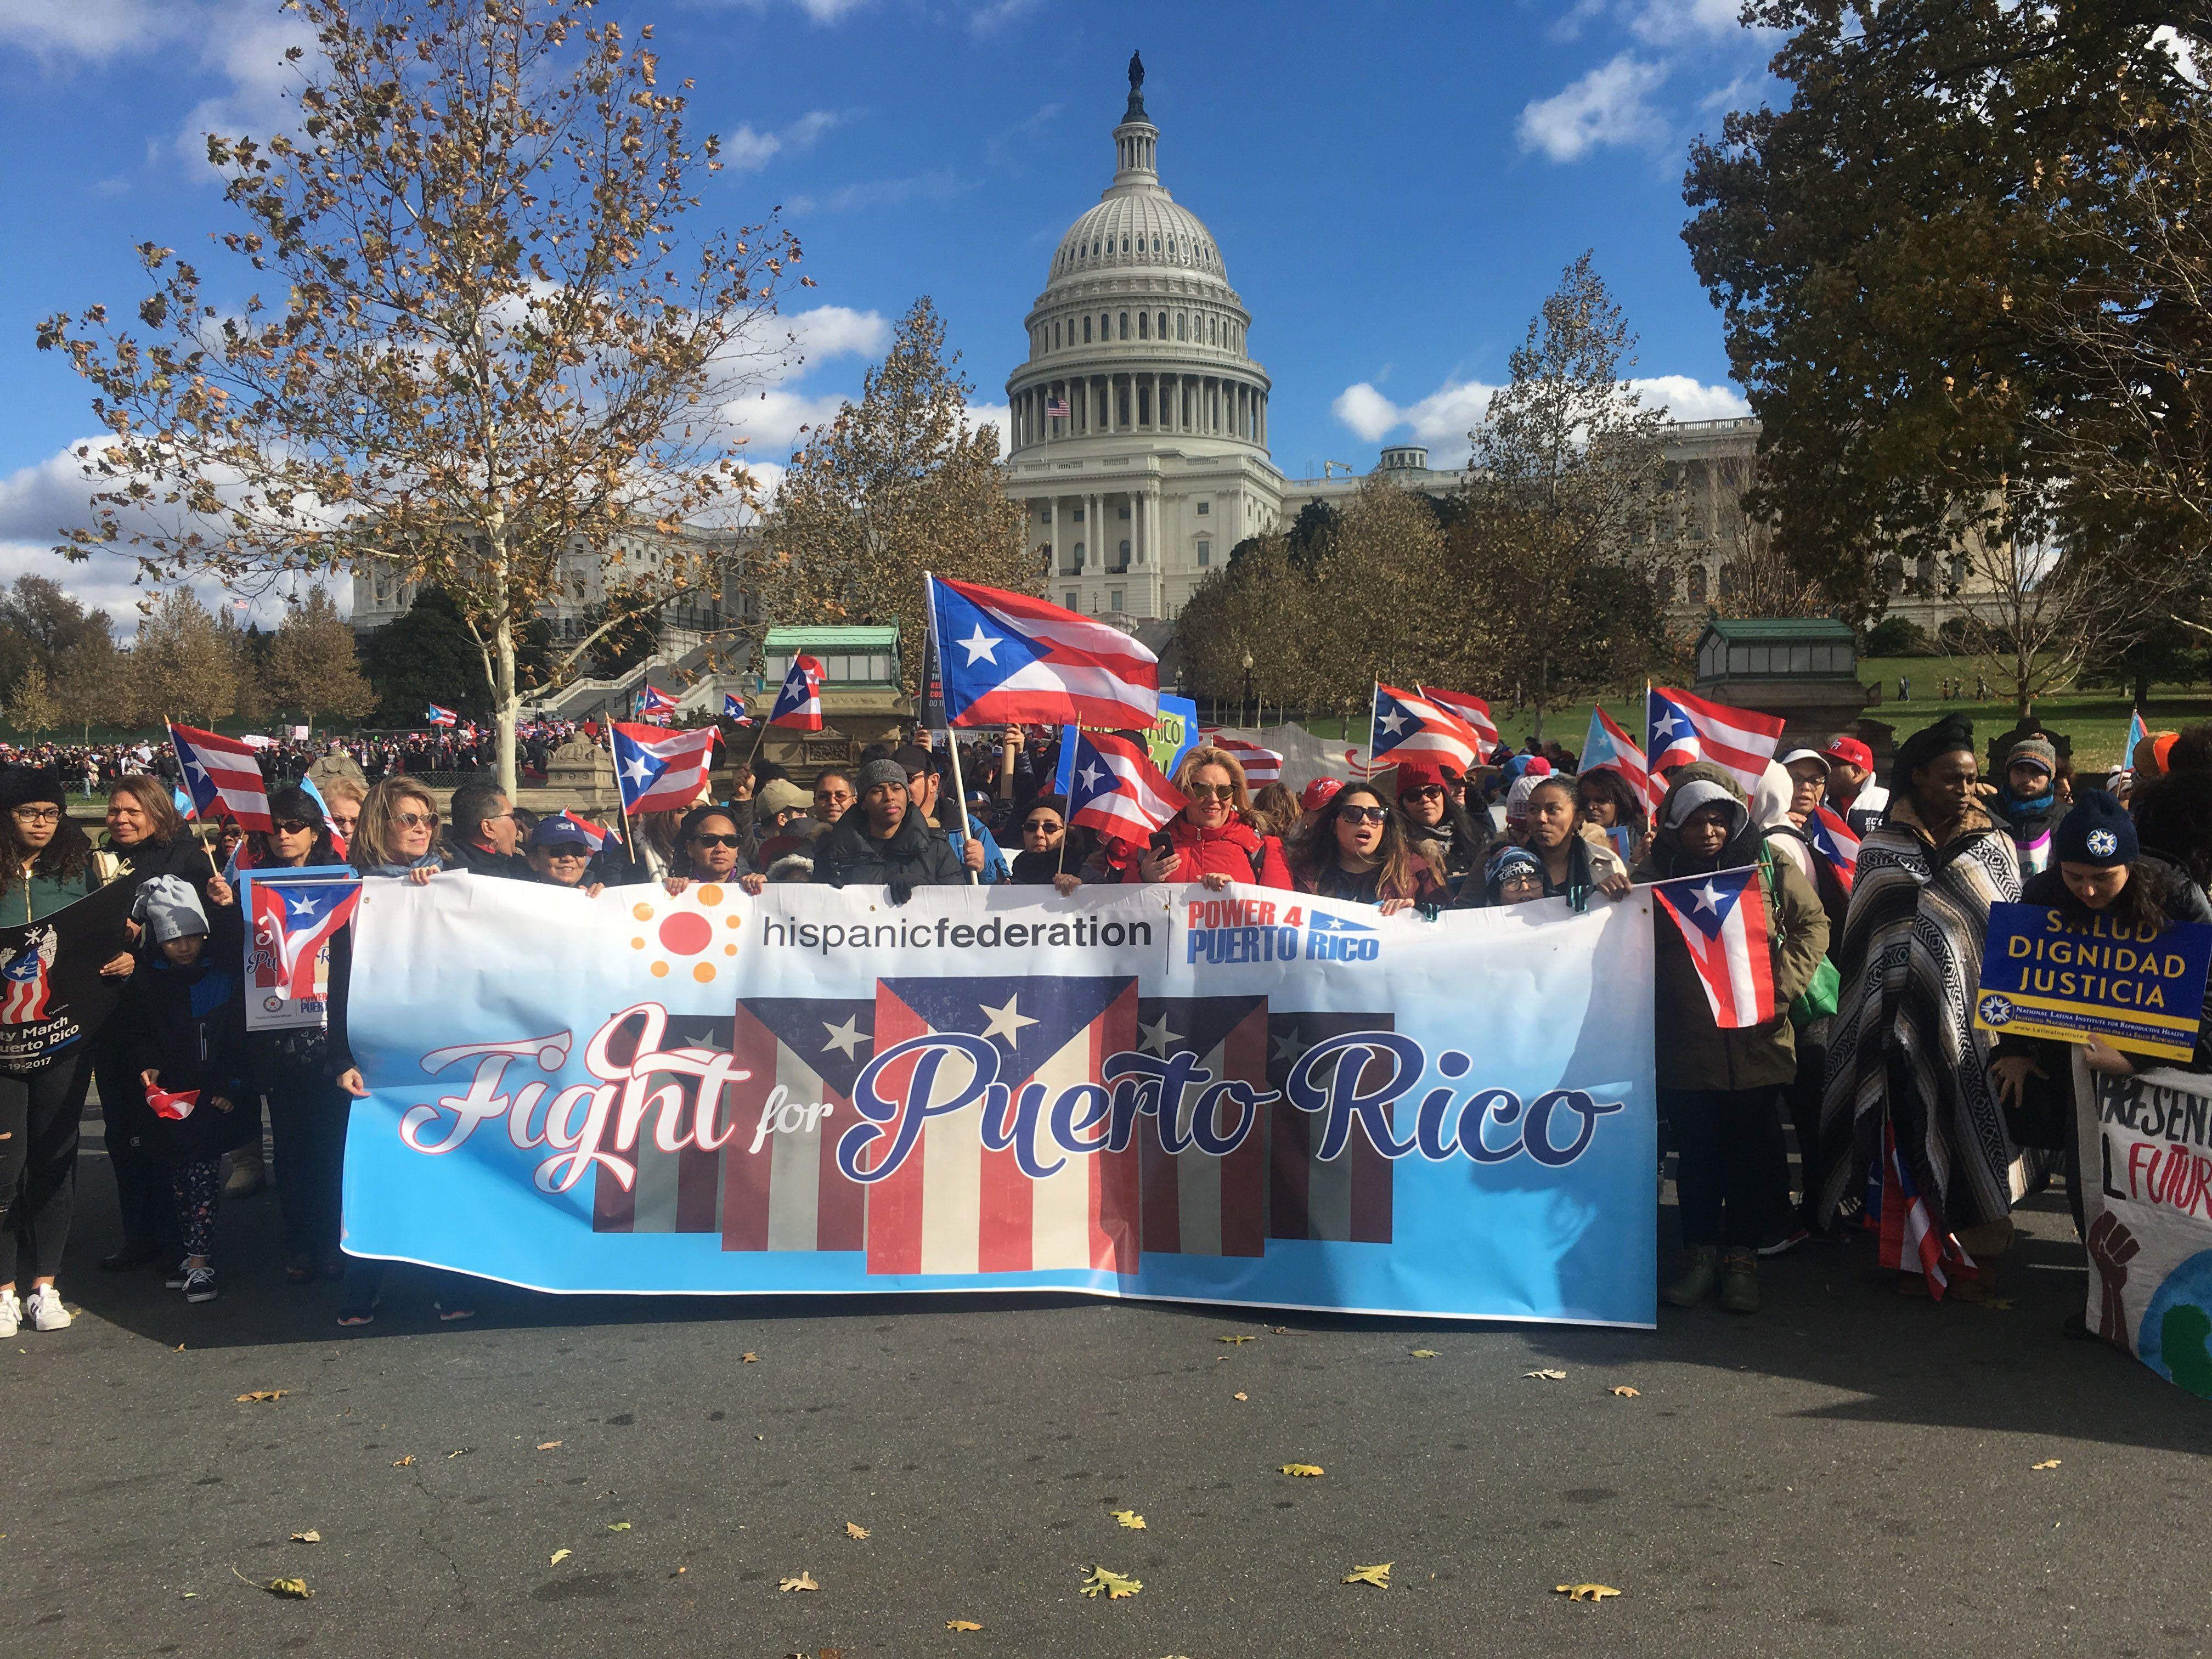 People carry signs during a protest for Puerto Rico on November 19, 2017 in Washington,DC. Puerto Ricans protested in Washington on Sunday in solidarity with their hurricane-hit island, criticizing the US response to the storm and calling for changes to be made. Hurricane Maria slammed into Puerto Rico in September, ravaging its infrastructure. Some 50 percent of its population of 3.4 million people is still without electricity more than two months later.Demonstrators gathered at the US Capitol building, with Puerto Rican flags and signs that read 'Fight for Puerto Rico,' then marched toward the Lincoln Memorial at the other end of the National Mall.  / AFP PHOTO / W.G. Dunlop        (Photo credit should read W.G. DUNLOP/AFP/Getty Images)